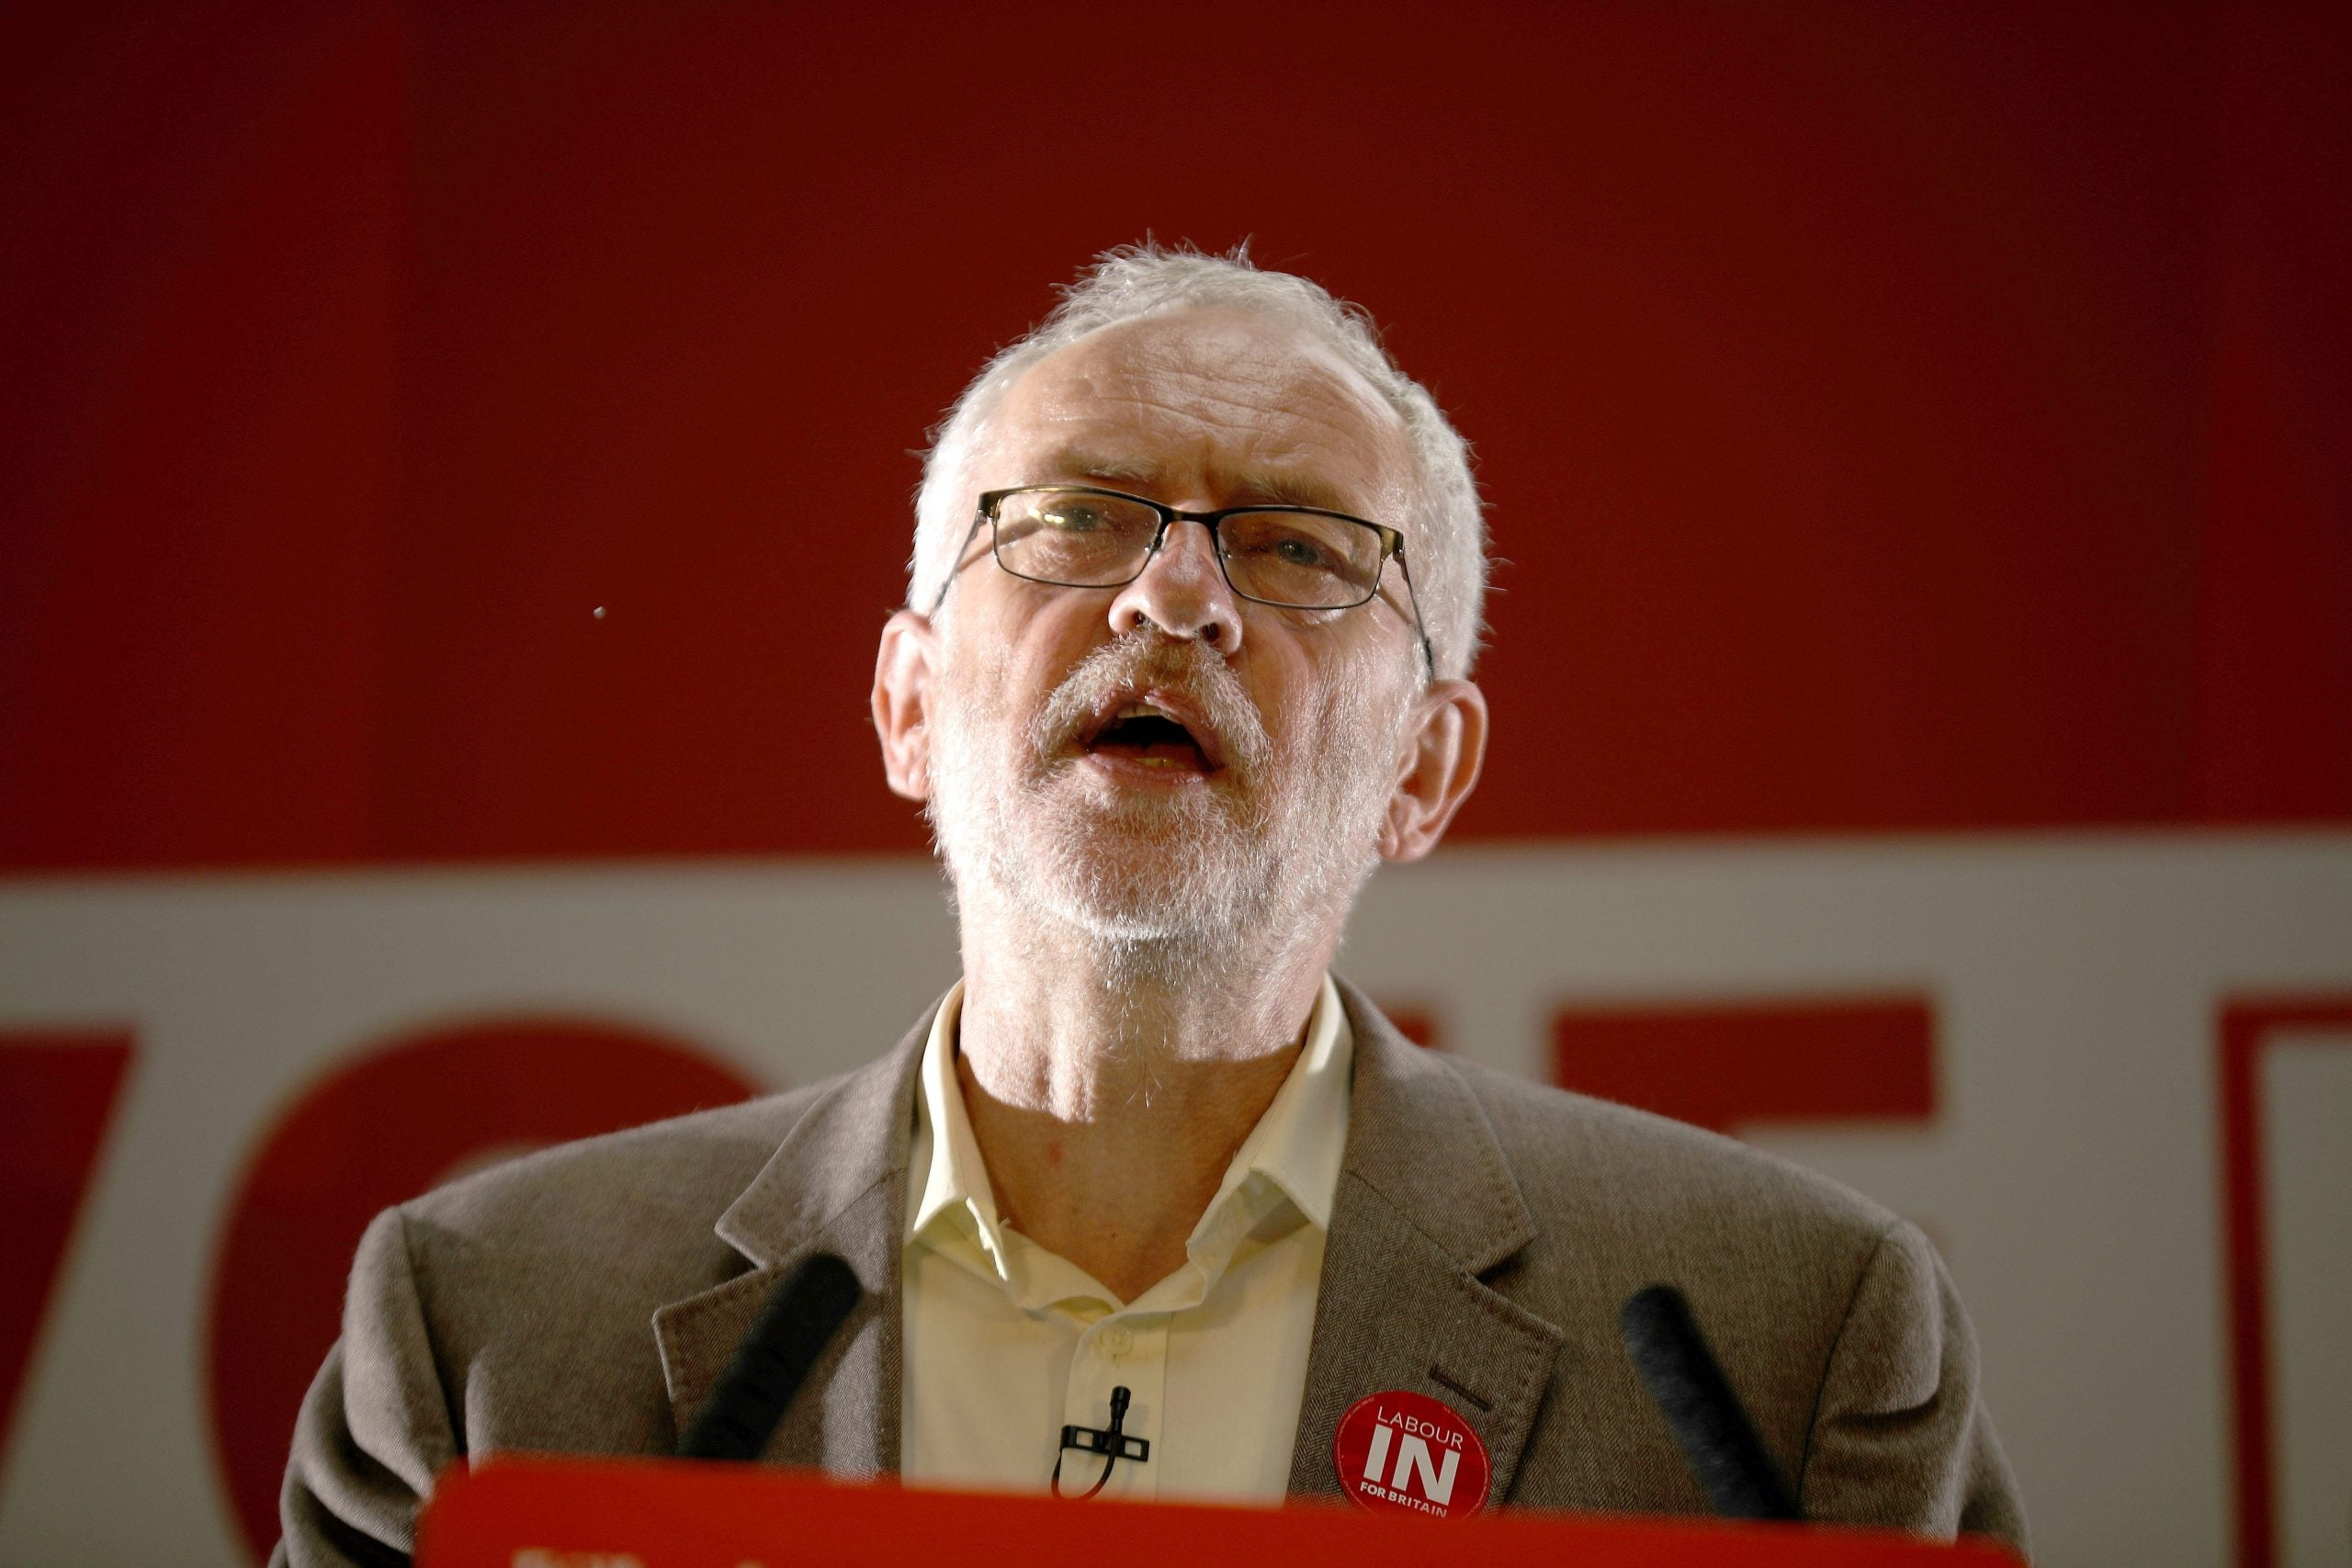 Opponents of Jeremy Corbyn should name their challenger - the Labour leader's ready for battle